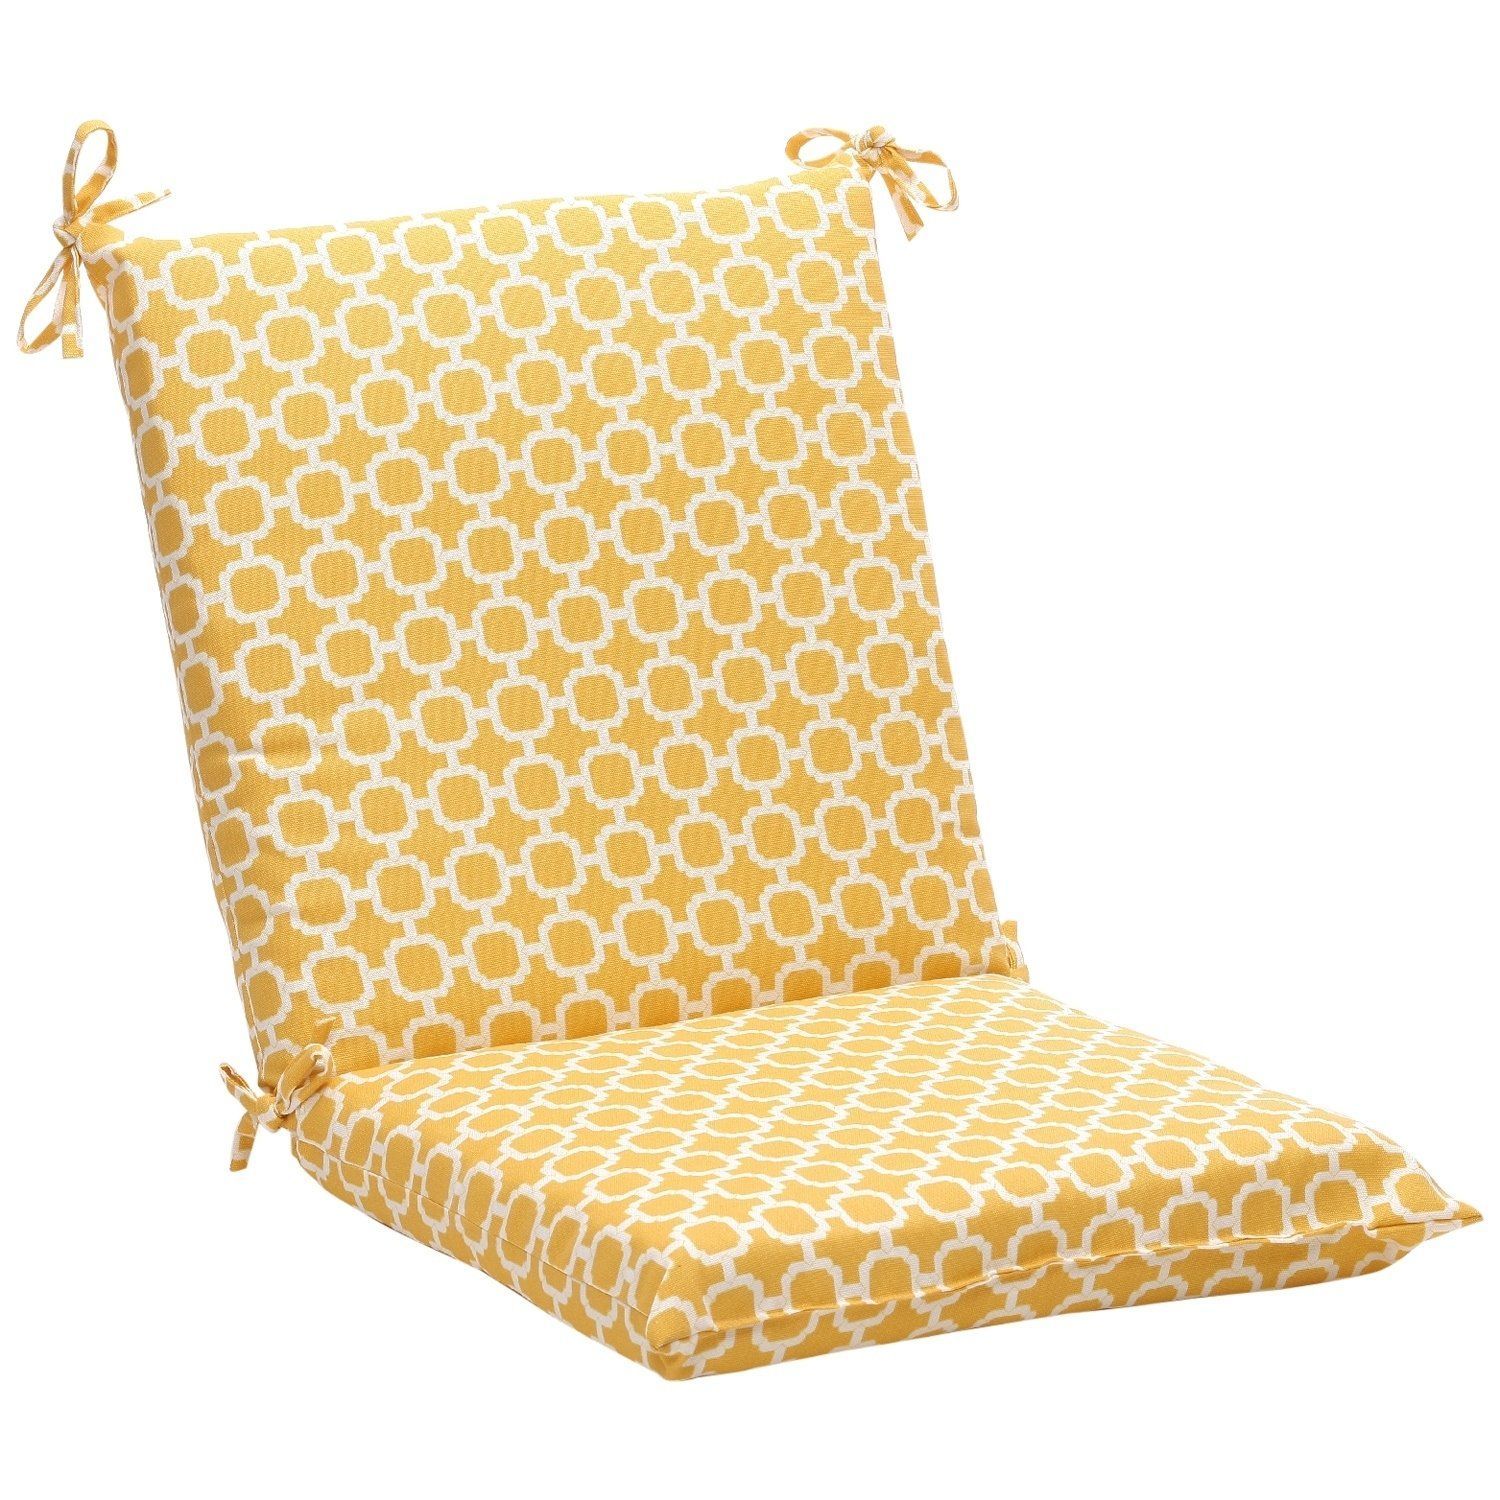 Squared Yellow White Geometric Outdoor Chair Cushion Pillow